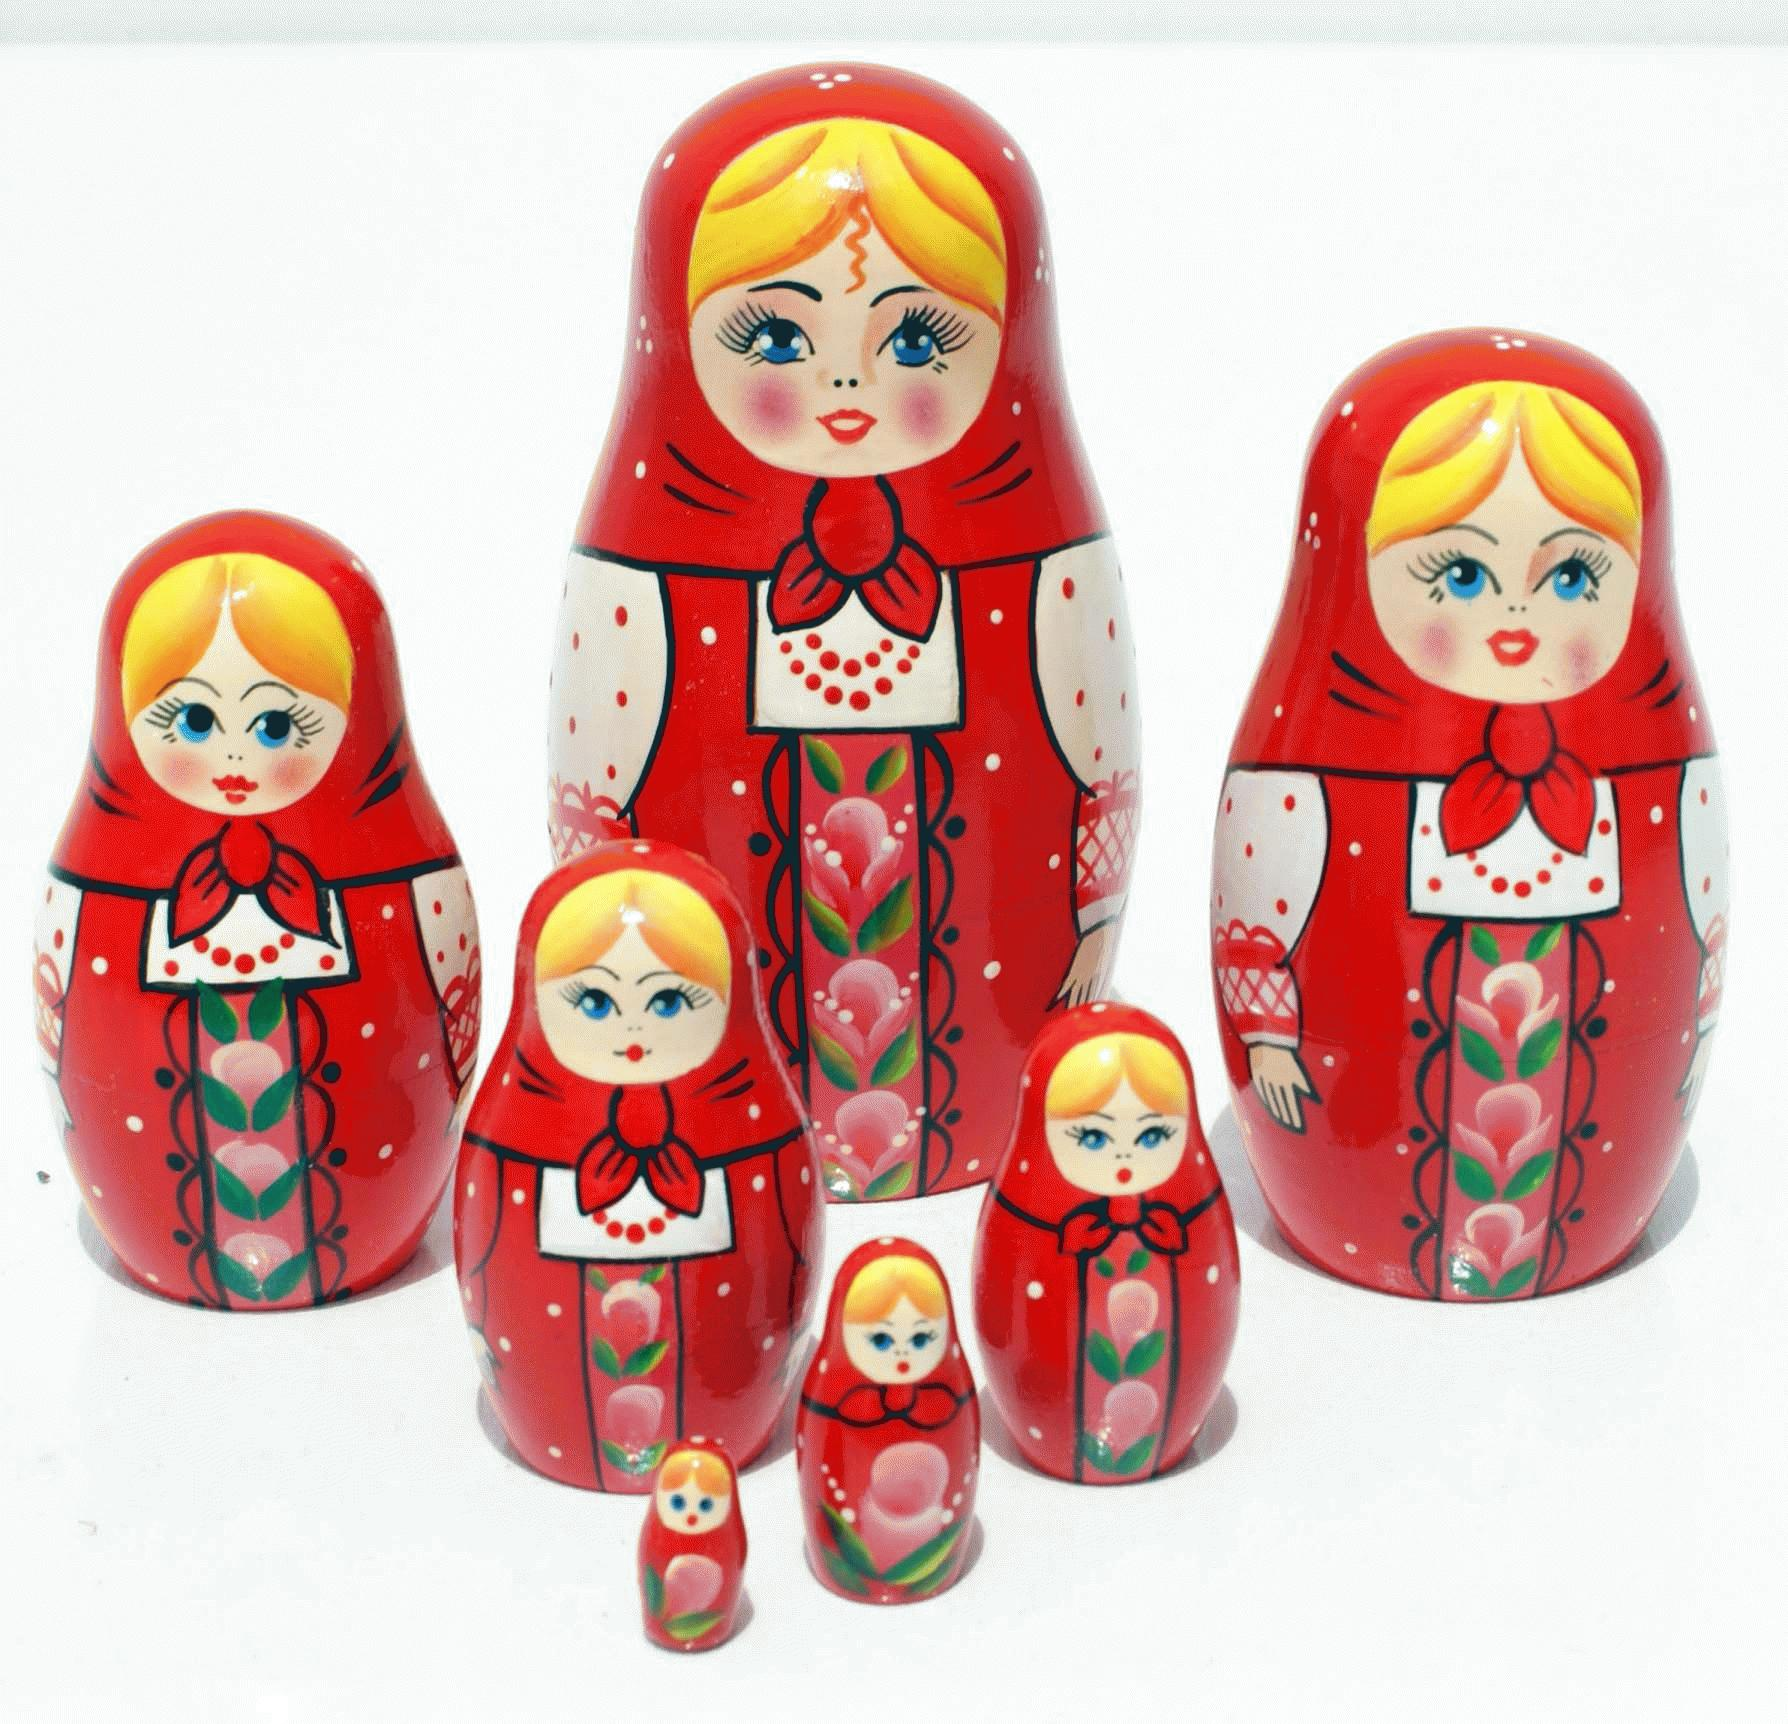 Red wooden nesting dolls sets of 7 units handmade product height of